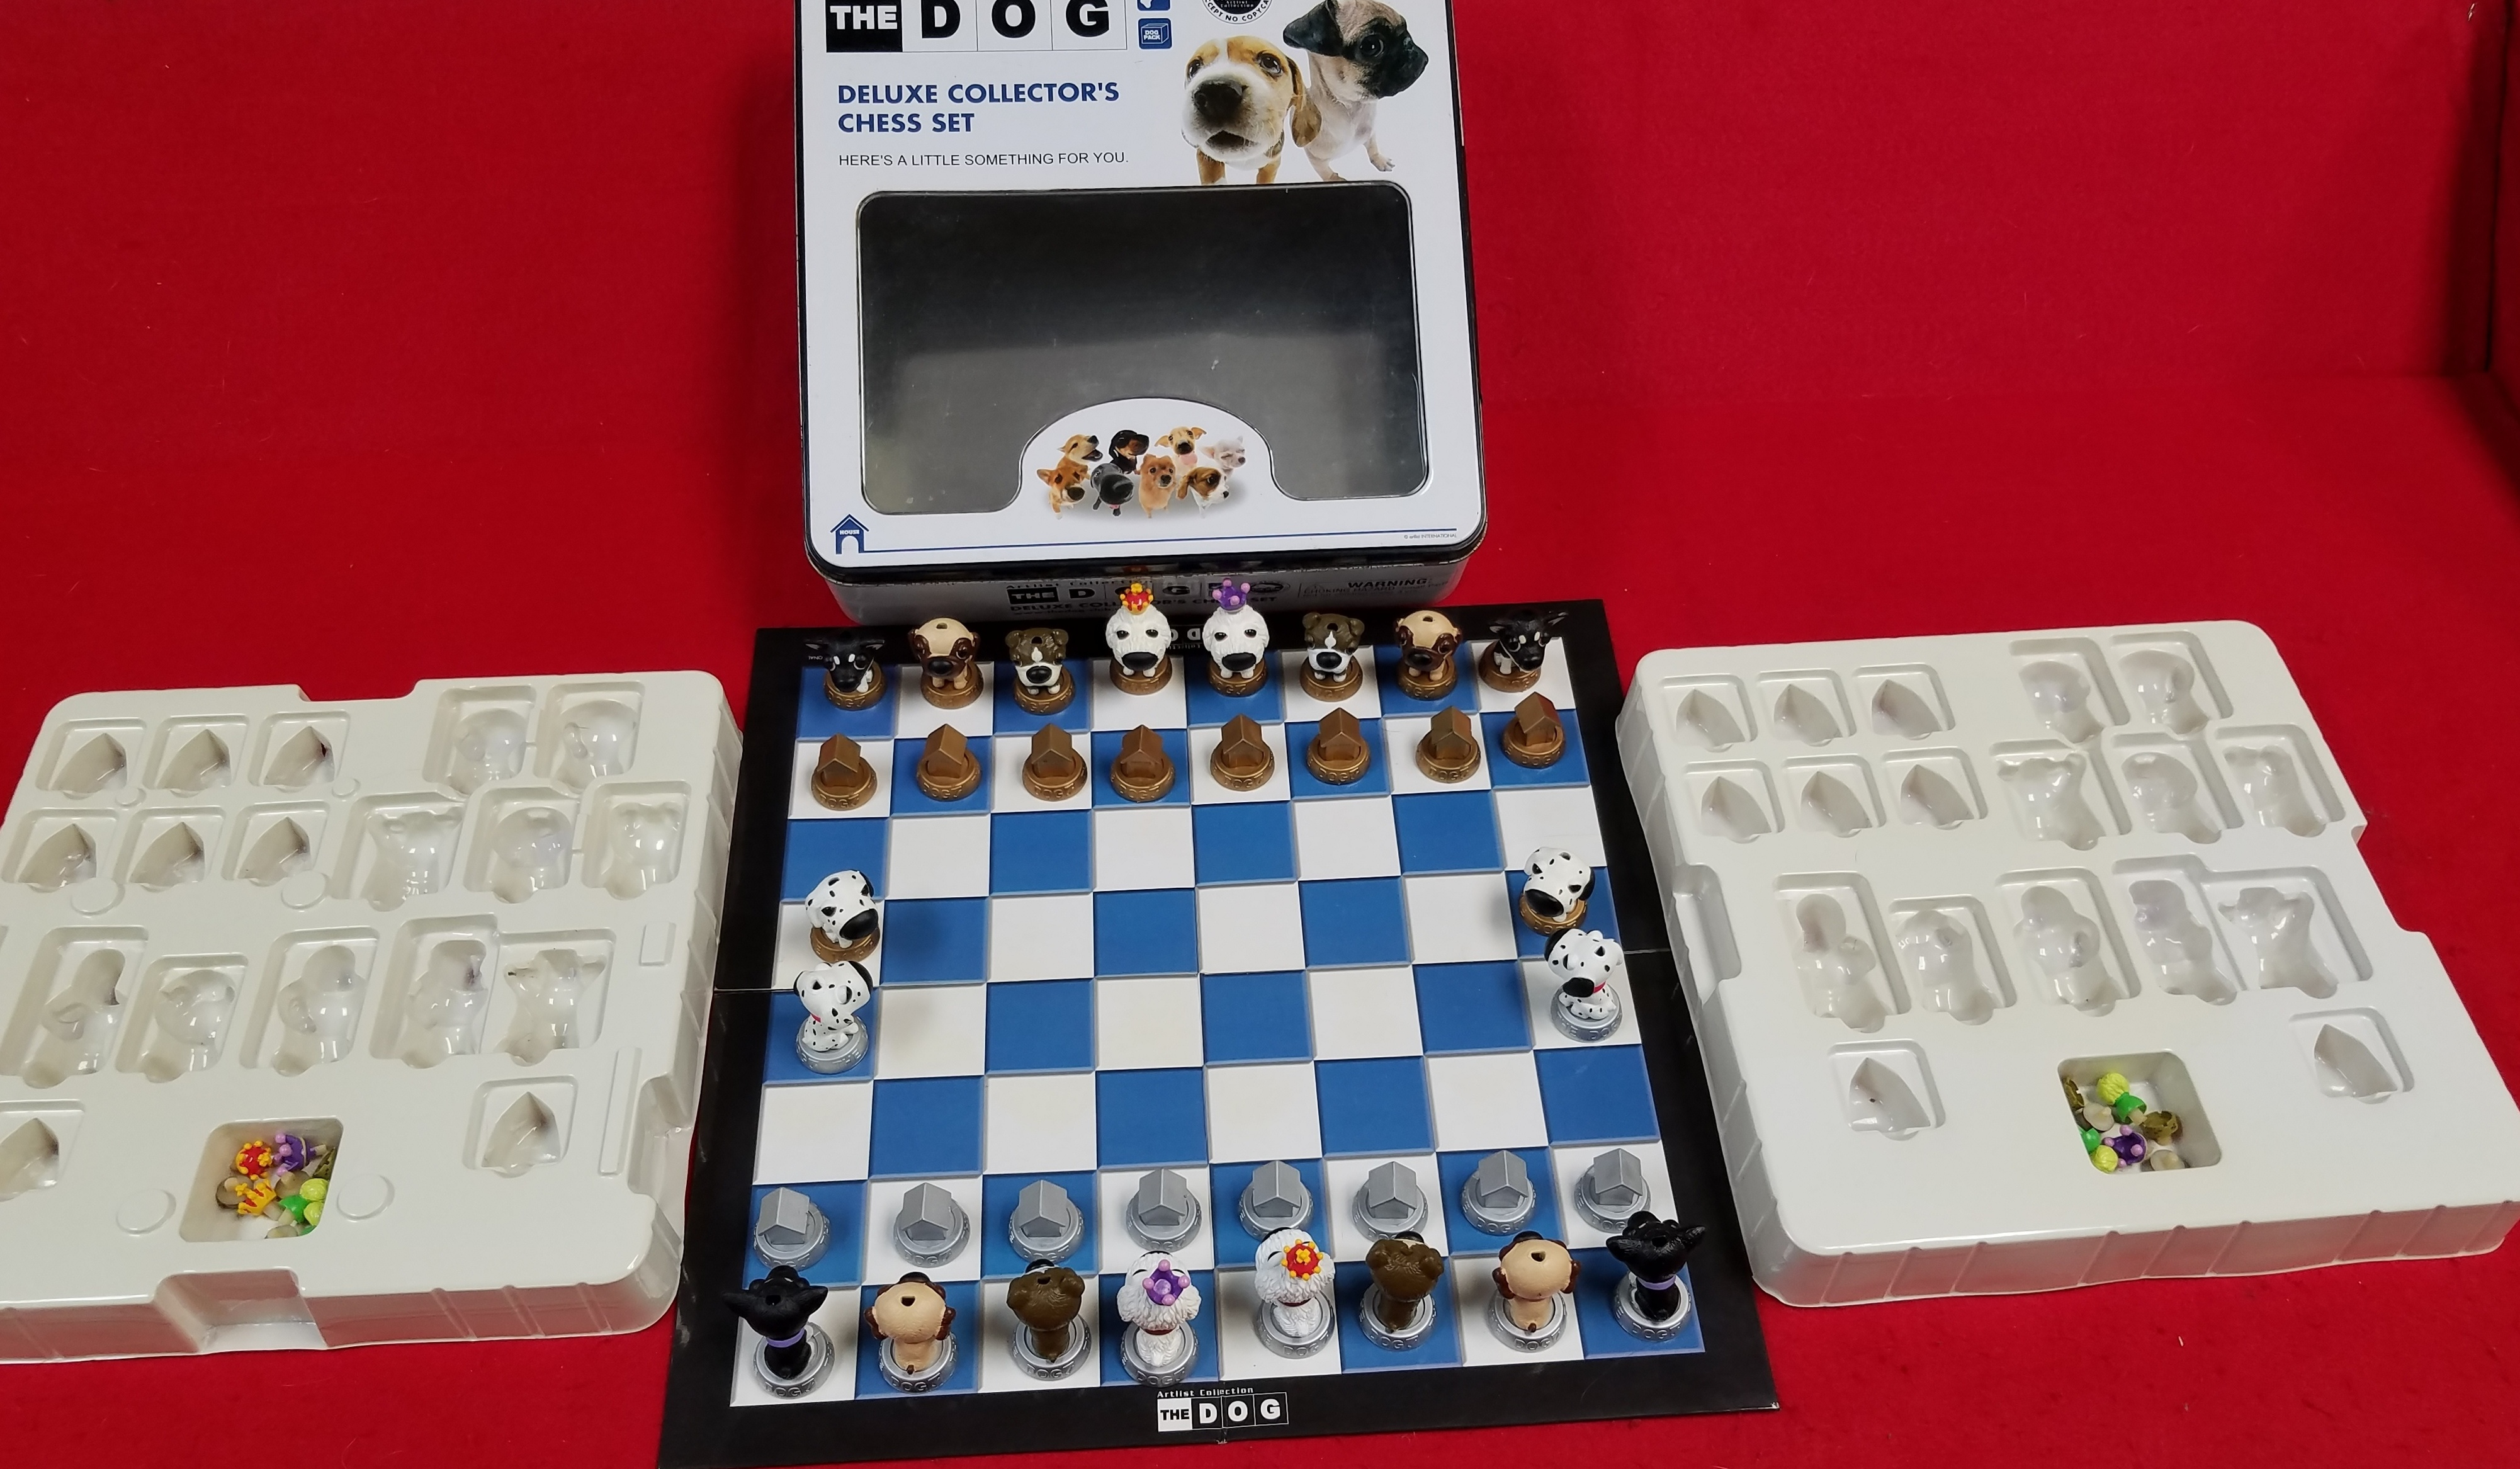 THE DOG ARTIST COLLECTION DELUXE COLLECTORS CHESS SET